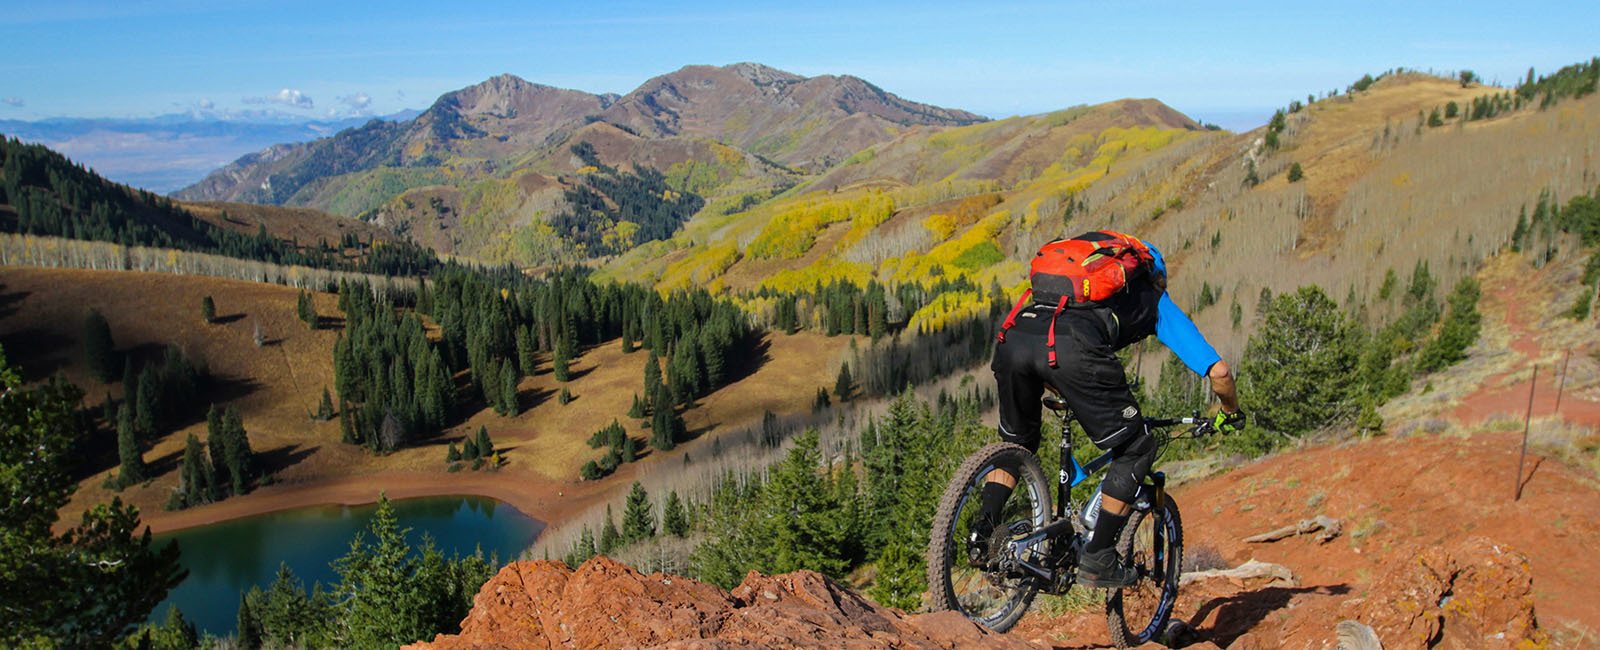 The Wasatch Crest Mountain Bike Trail: Salt Lake's Finest Ride